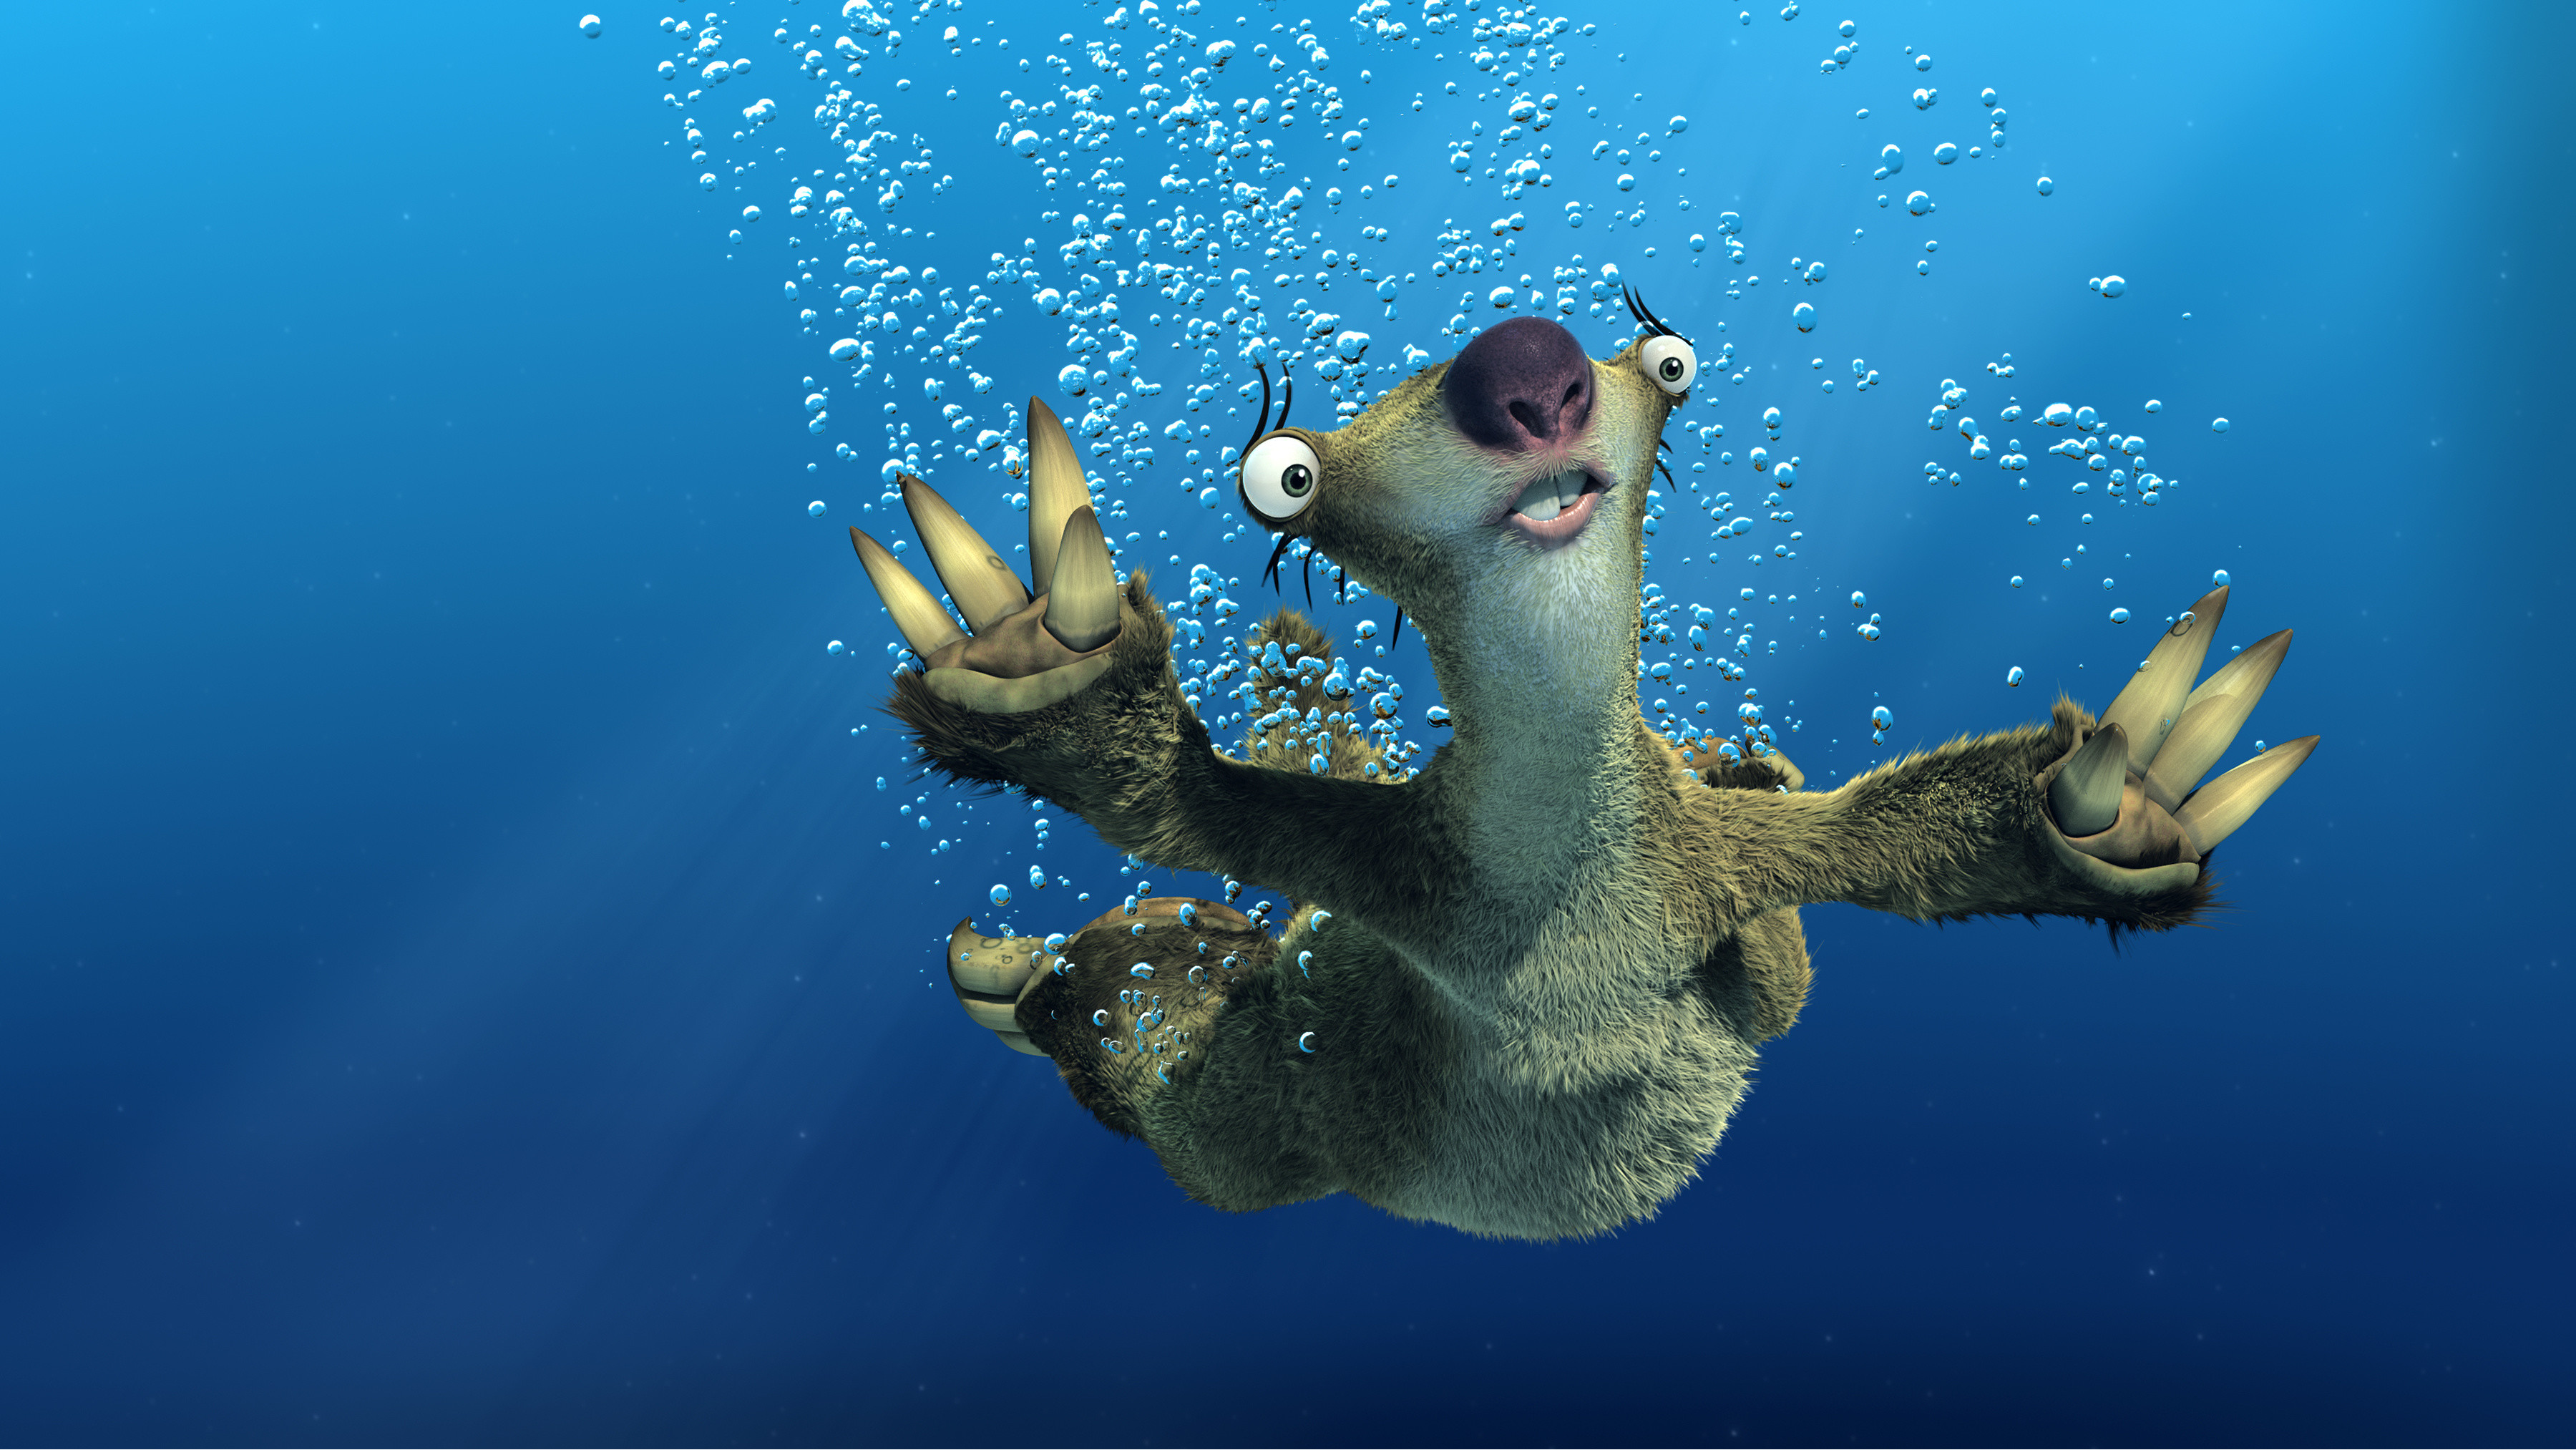 3600x2026 Video Game - Ice Age Sid (Ice Age) Wallpaper